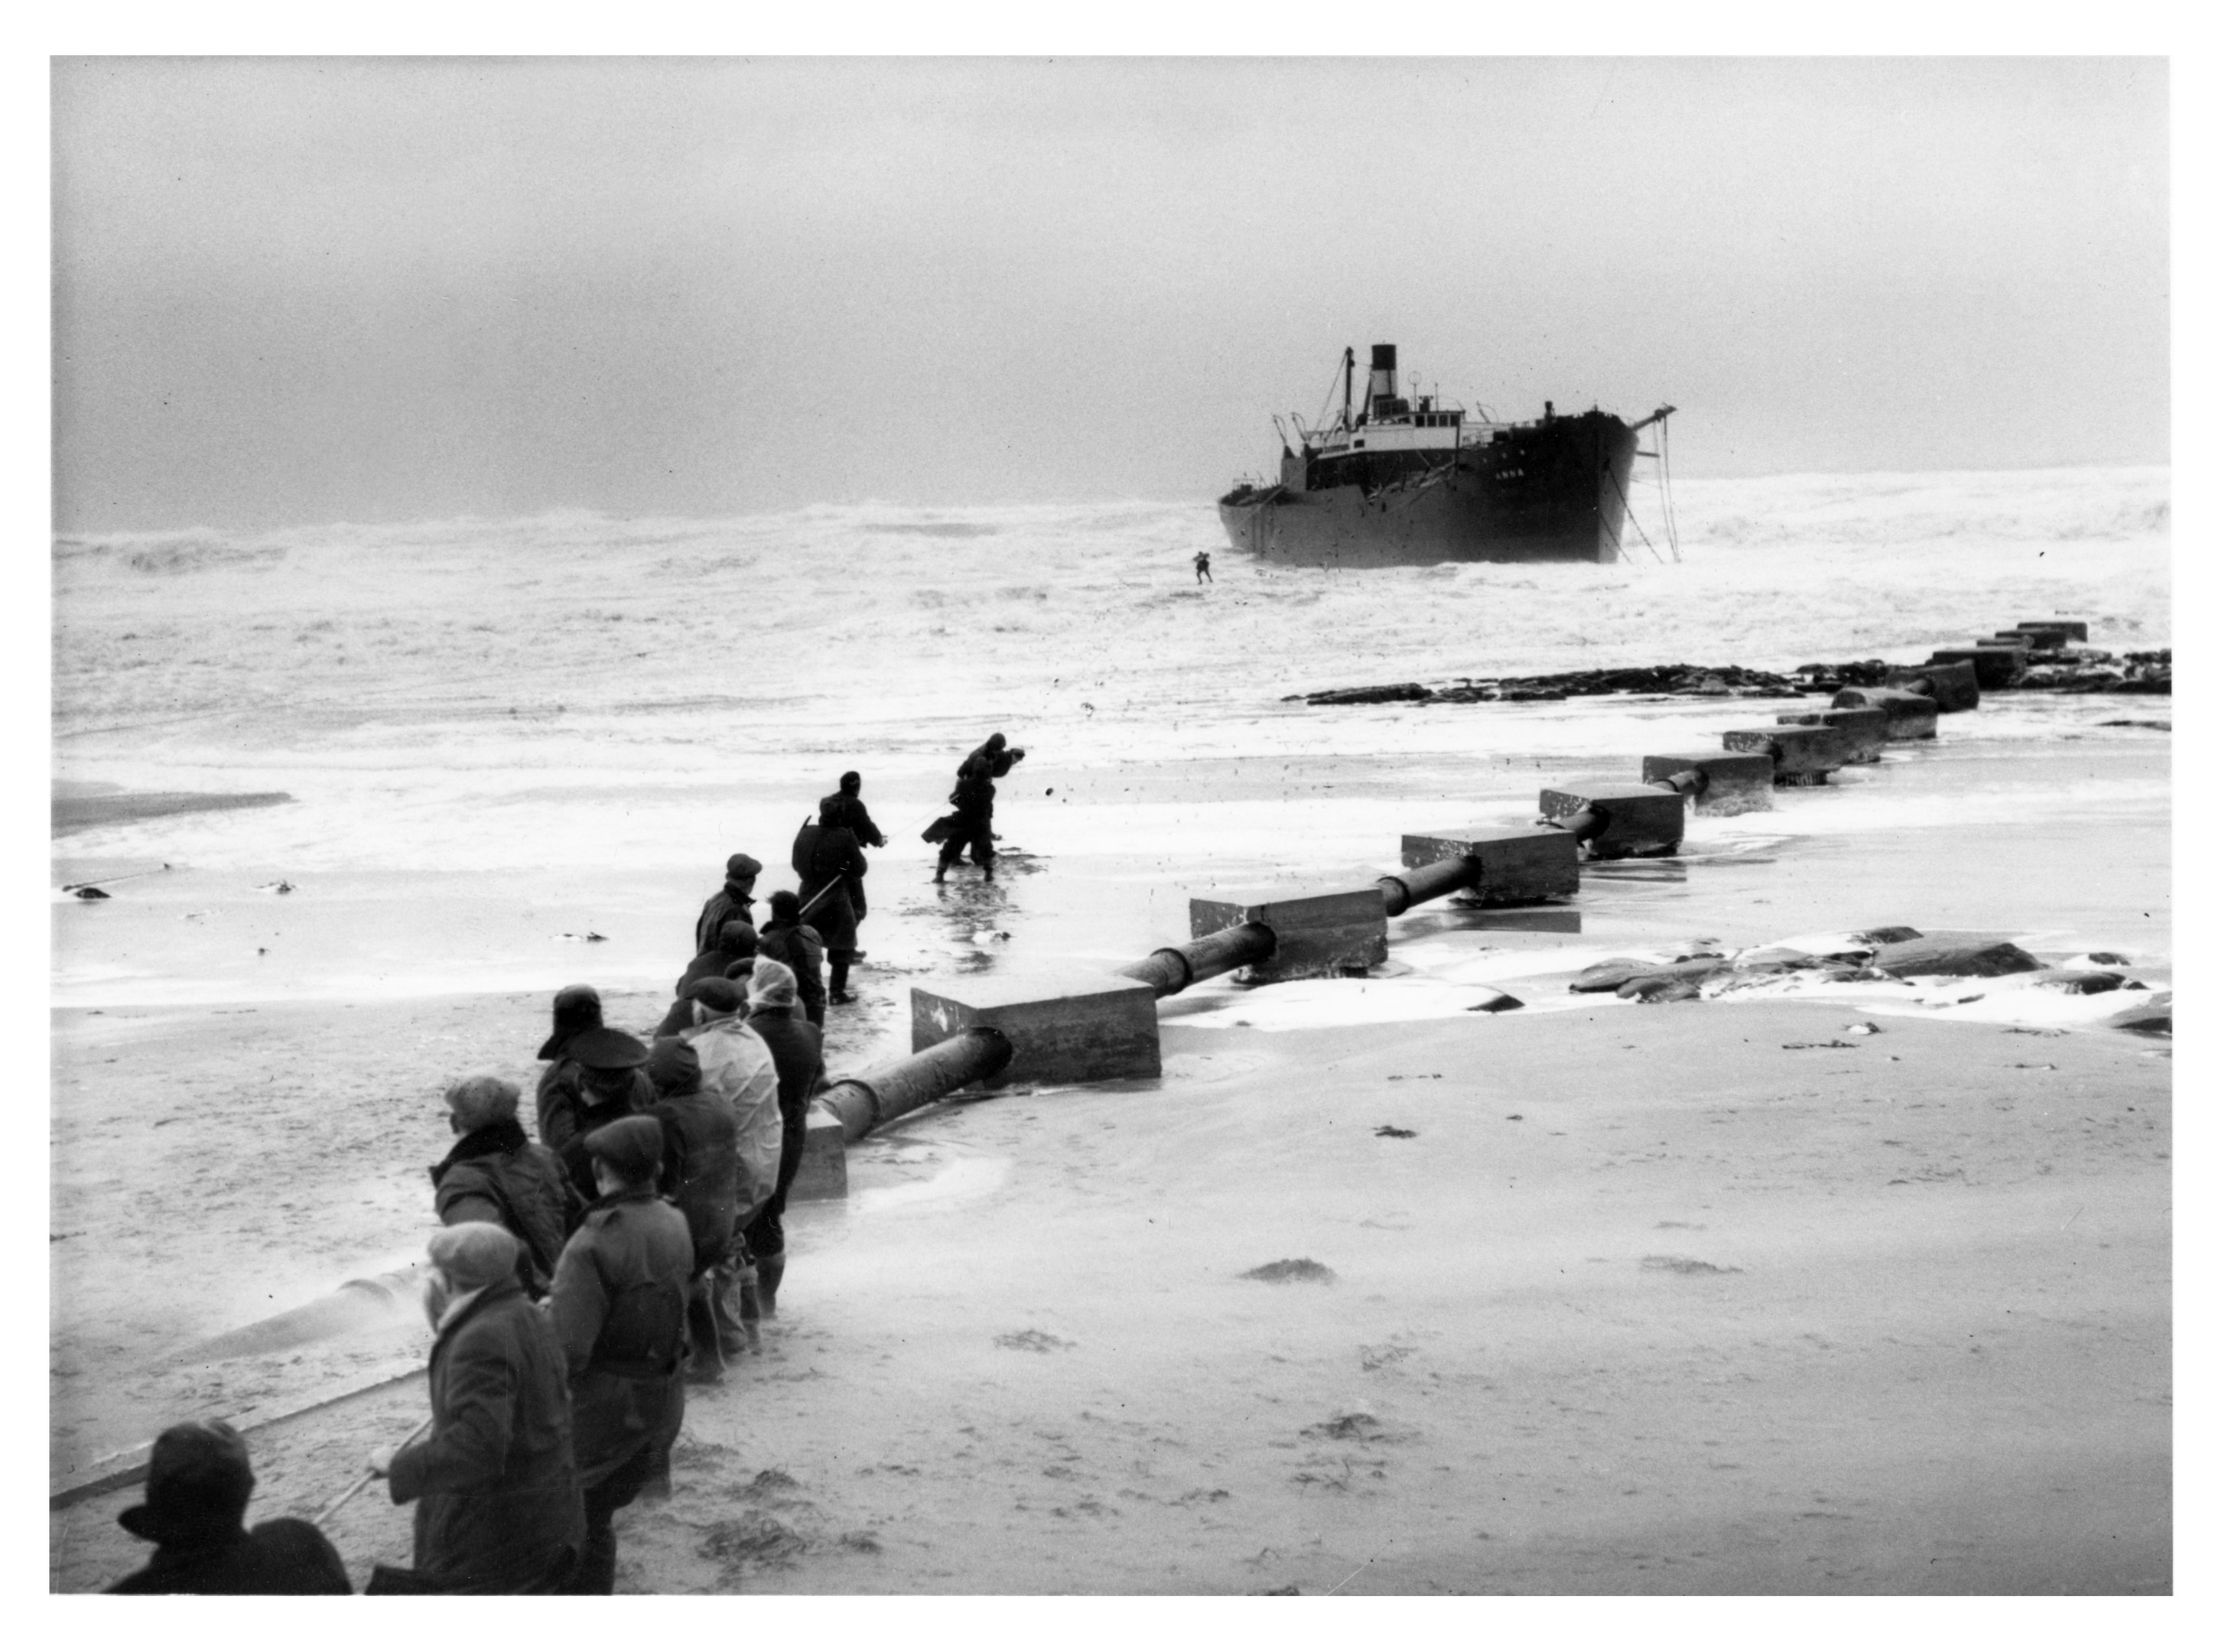 The Finnish cargo steamer Anna ran aground at St Combs after losing its rudder.